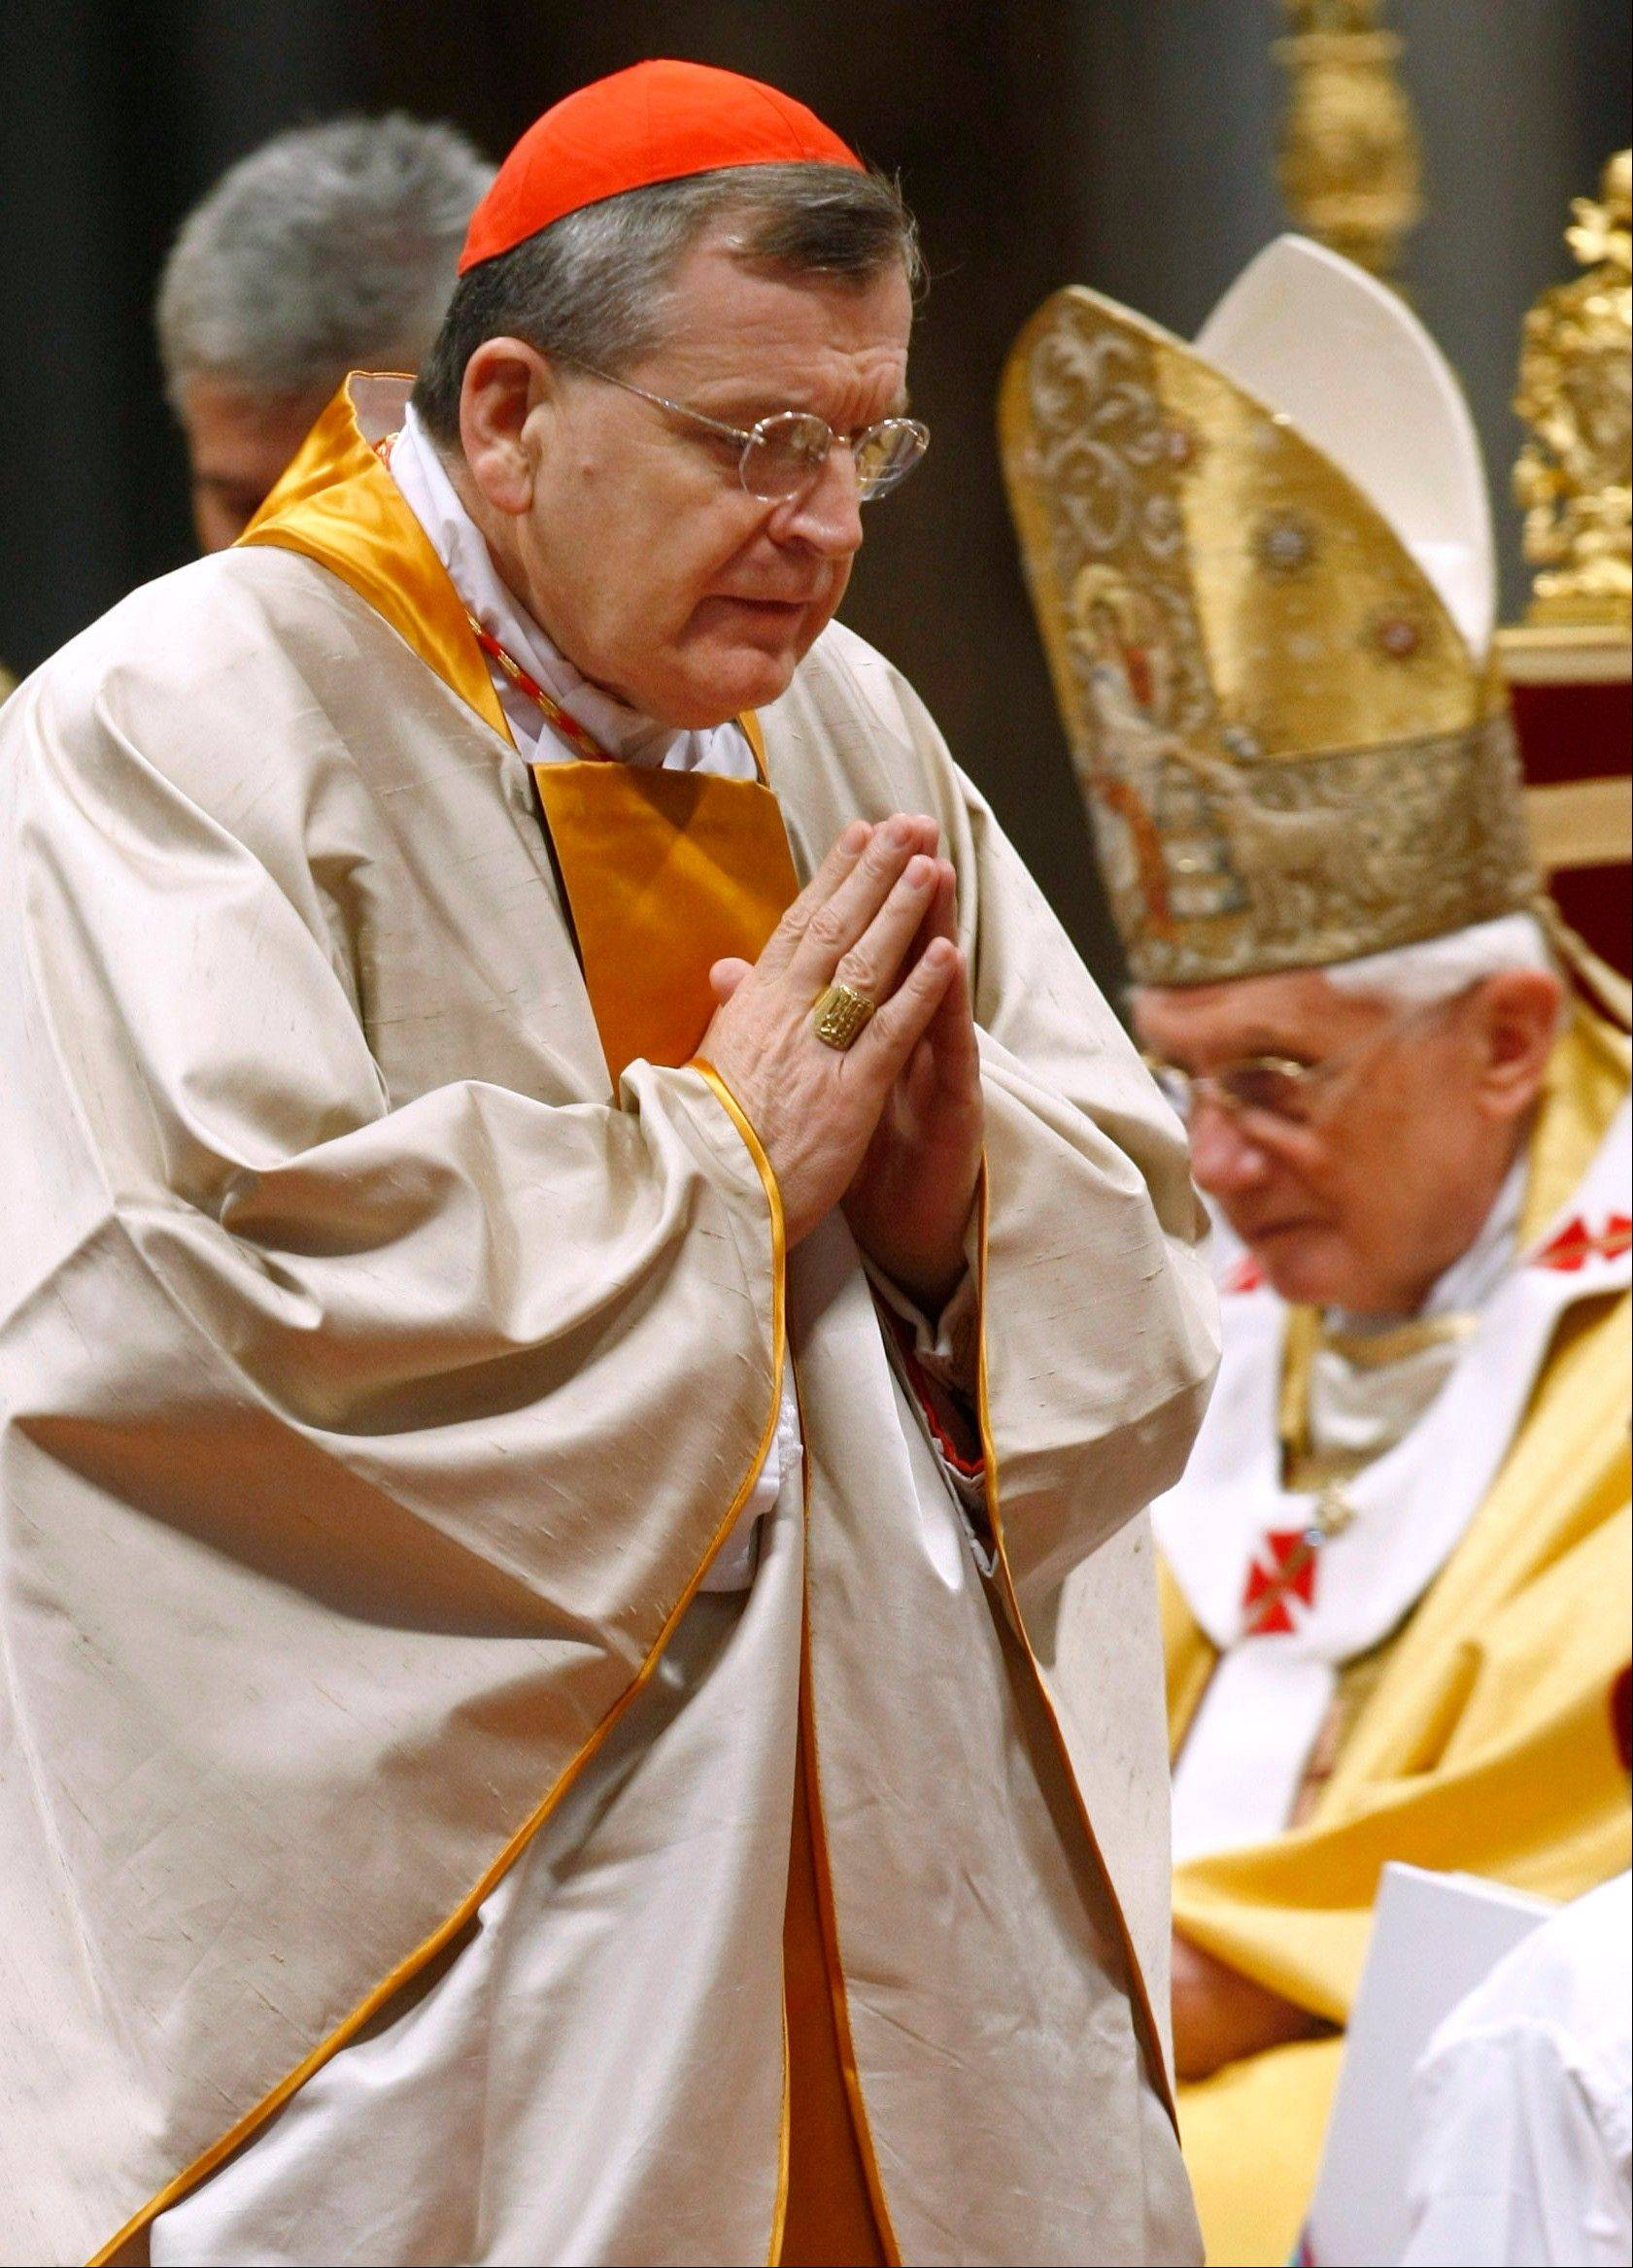 Newly appointed U.S. Cardinal Raymond Leo Burke walks past Pope Benedict XVI after receiving Cardinal�s ring during a mass in St. Peter�s Basilica, at the Vatican. Burke, the former St. Louis archbishop, is the first American to lead the Vatican supreme court.